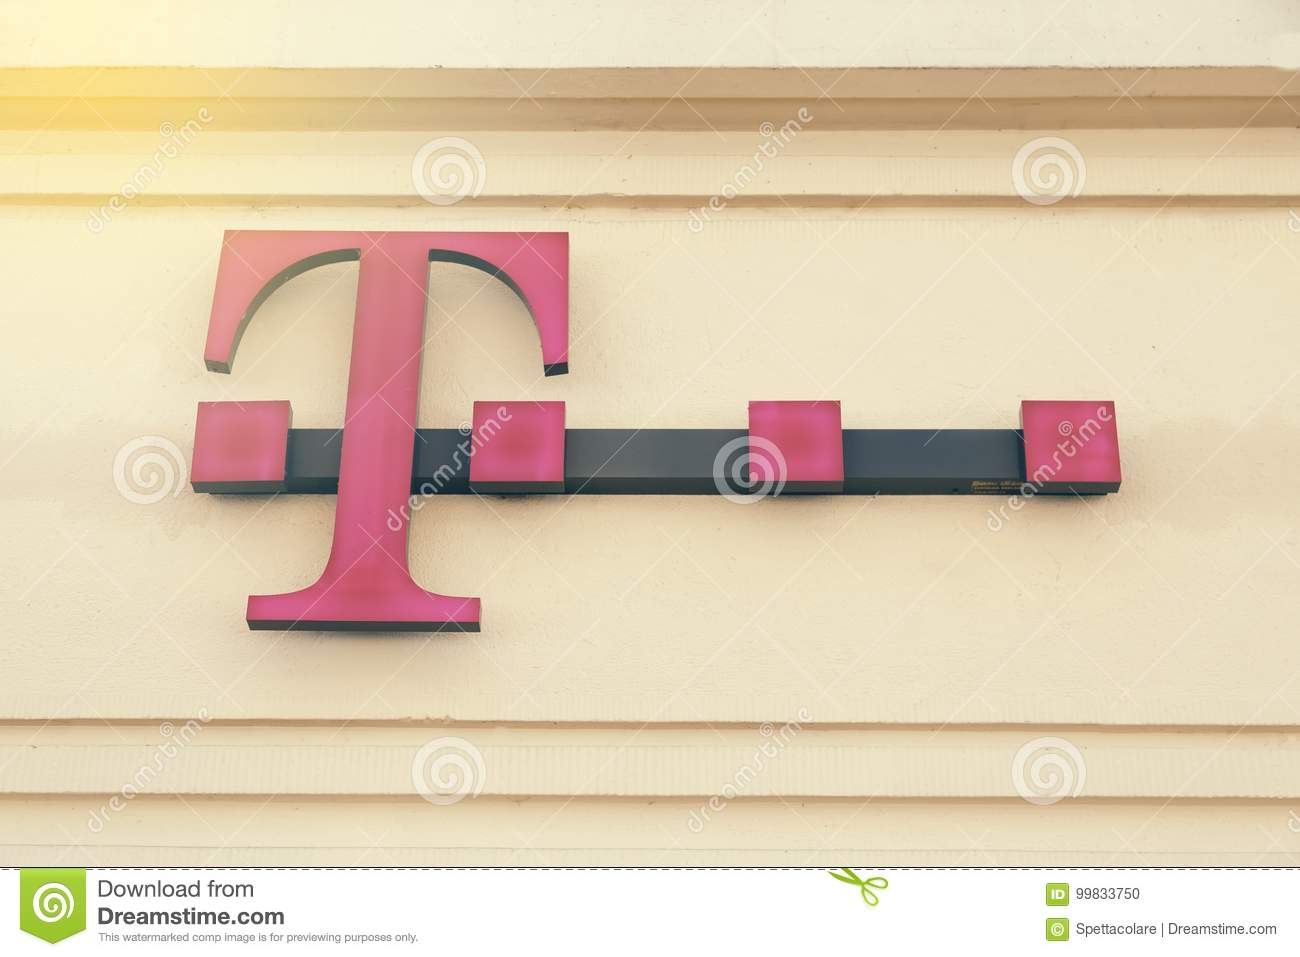 Signe 2 de magasin de T-Mobile